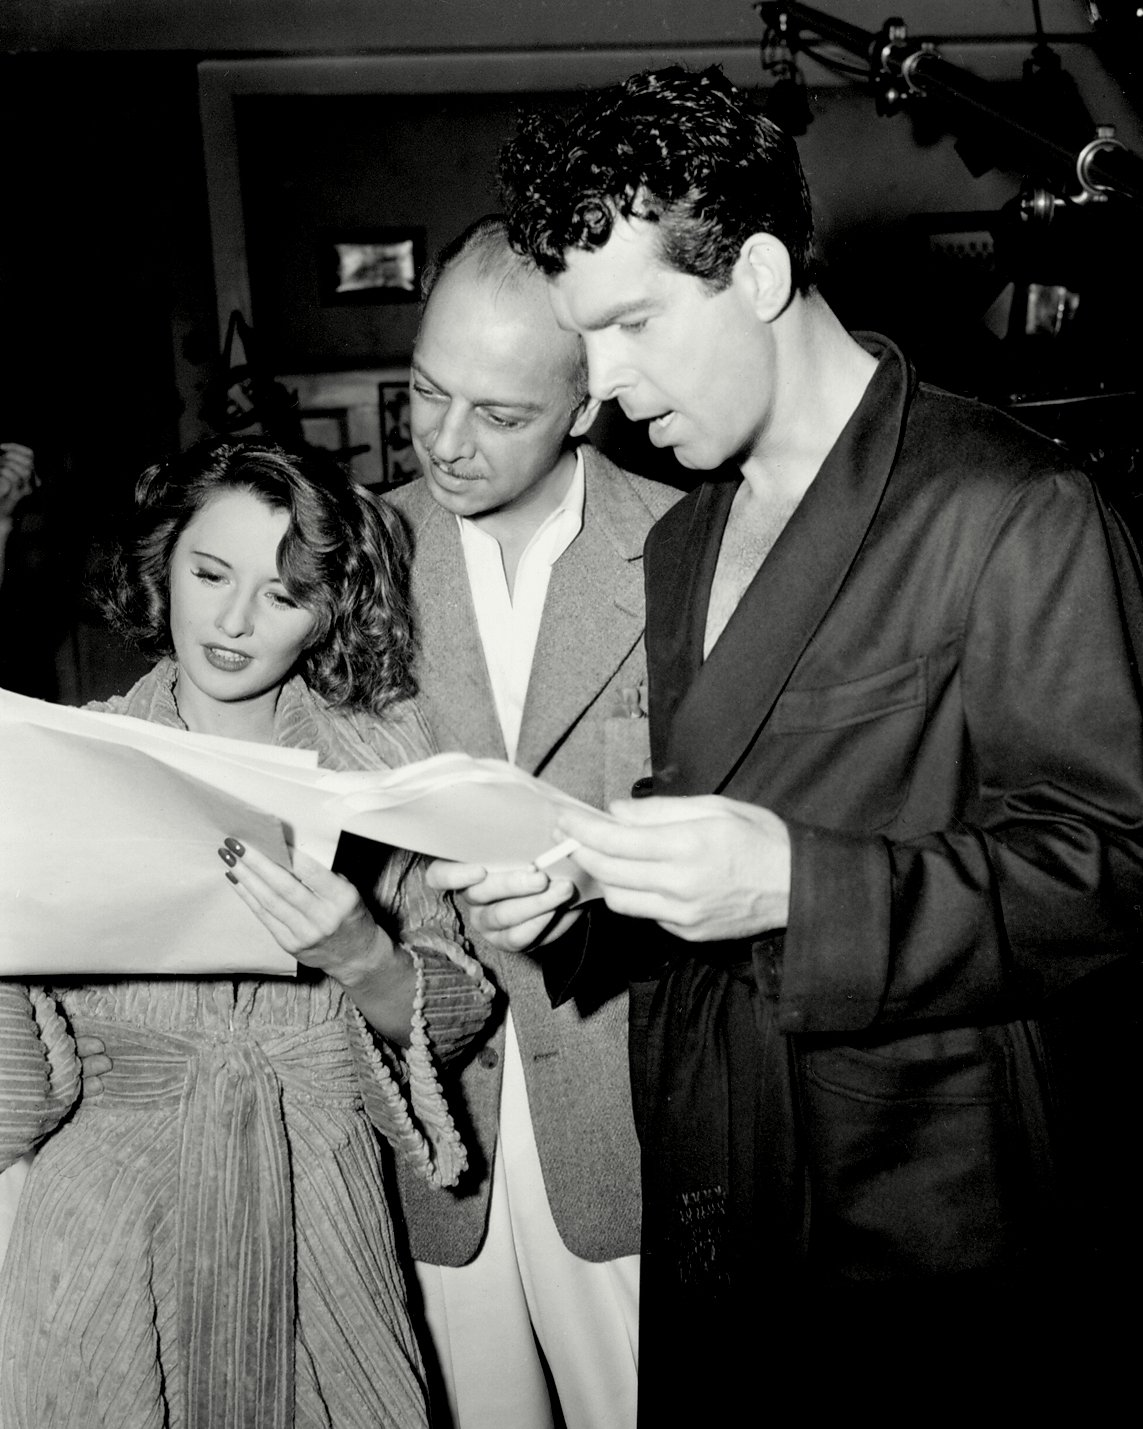 BARBARA STANWYCK FRED MacMURRAY ON THE SET OF 'REMEMBER THE NIGHT' 8X10 PHOTO (BB-915)